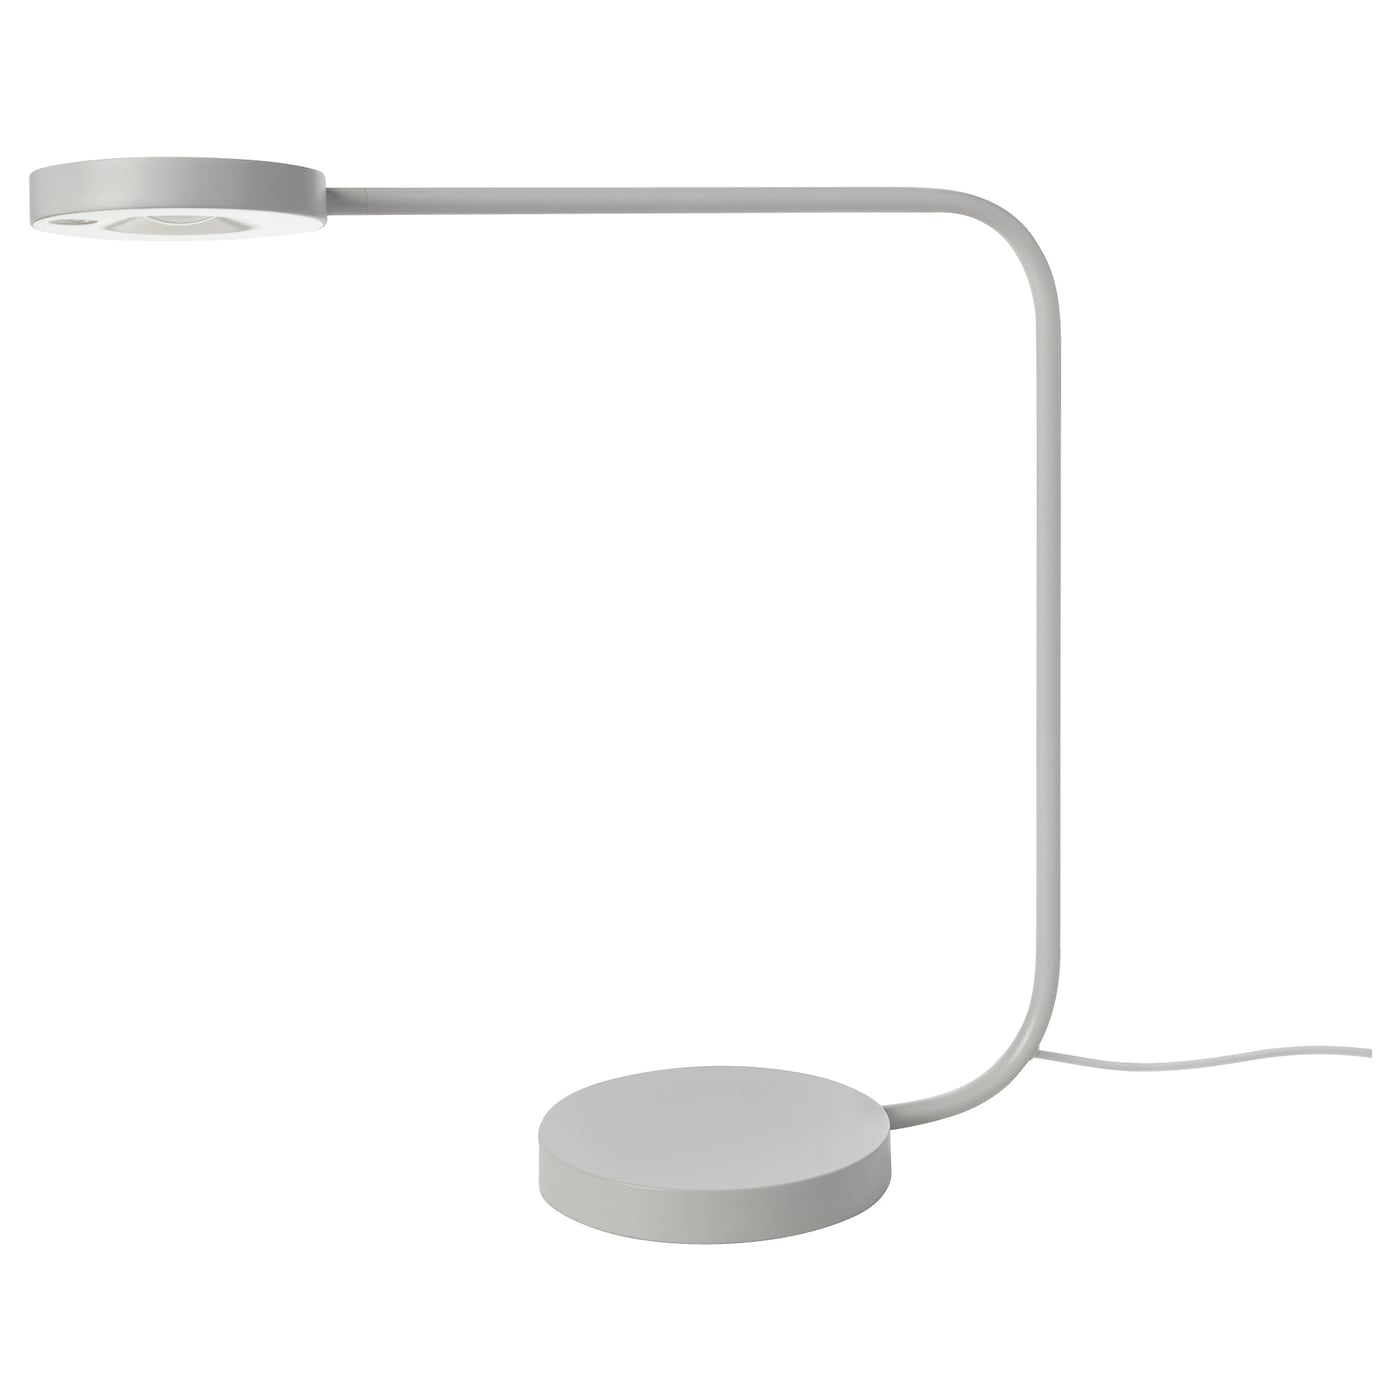 ypperlig led table lamp light grey ikea. Black Bedroom Furniture Sets. Home Design Ideas